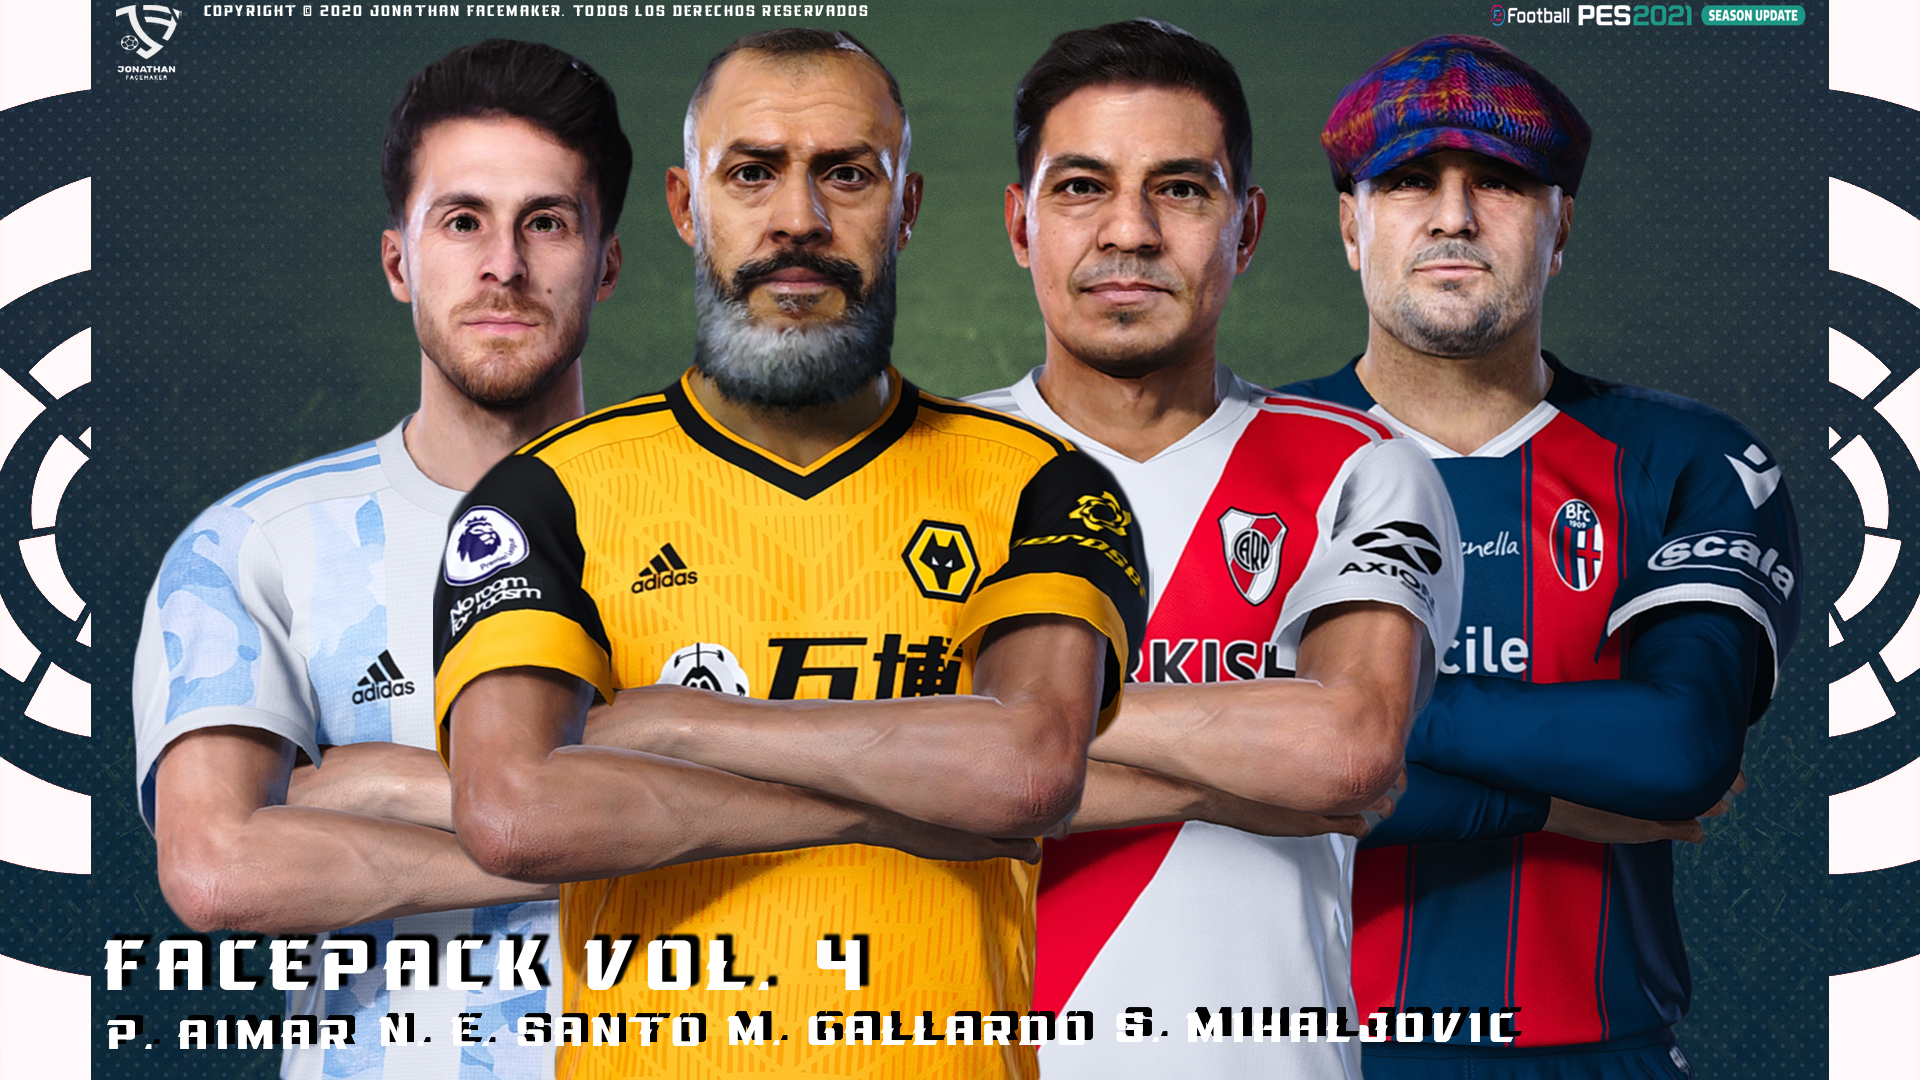 PES 2021 Facepack Vol. 4 by Jonathan Facemaker